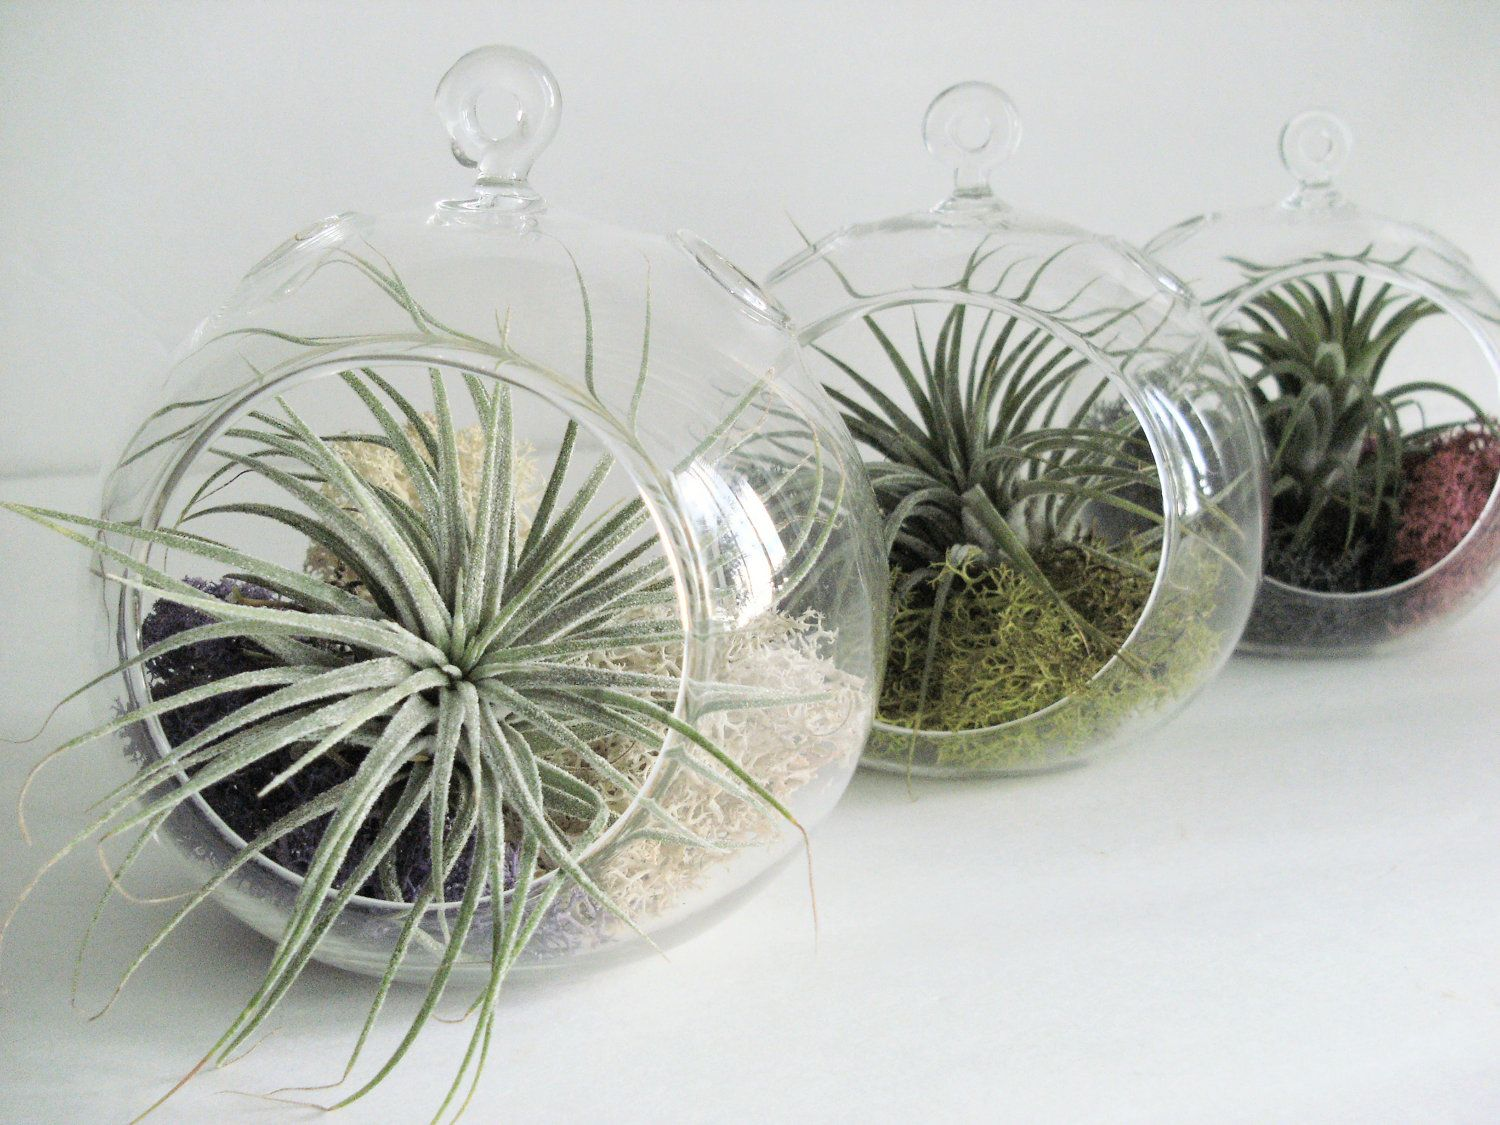 Small hanging air plant terrarium your choice of moss colors 45 cheap planters vases buy quality terrarium set directly from china diy planters suppliers diy planter vase with air plant mosshanging crystal glass orb reviewsmspy